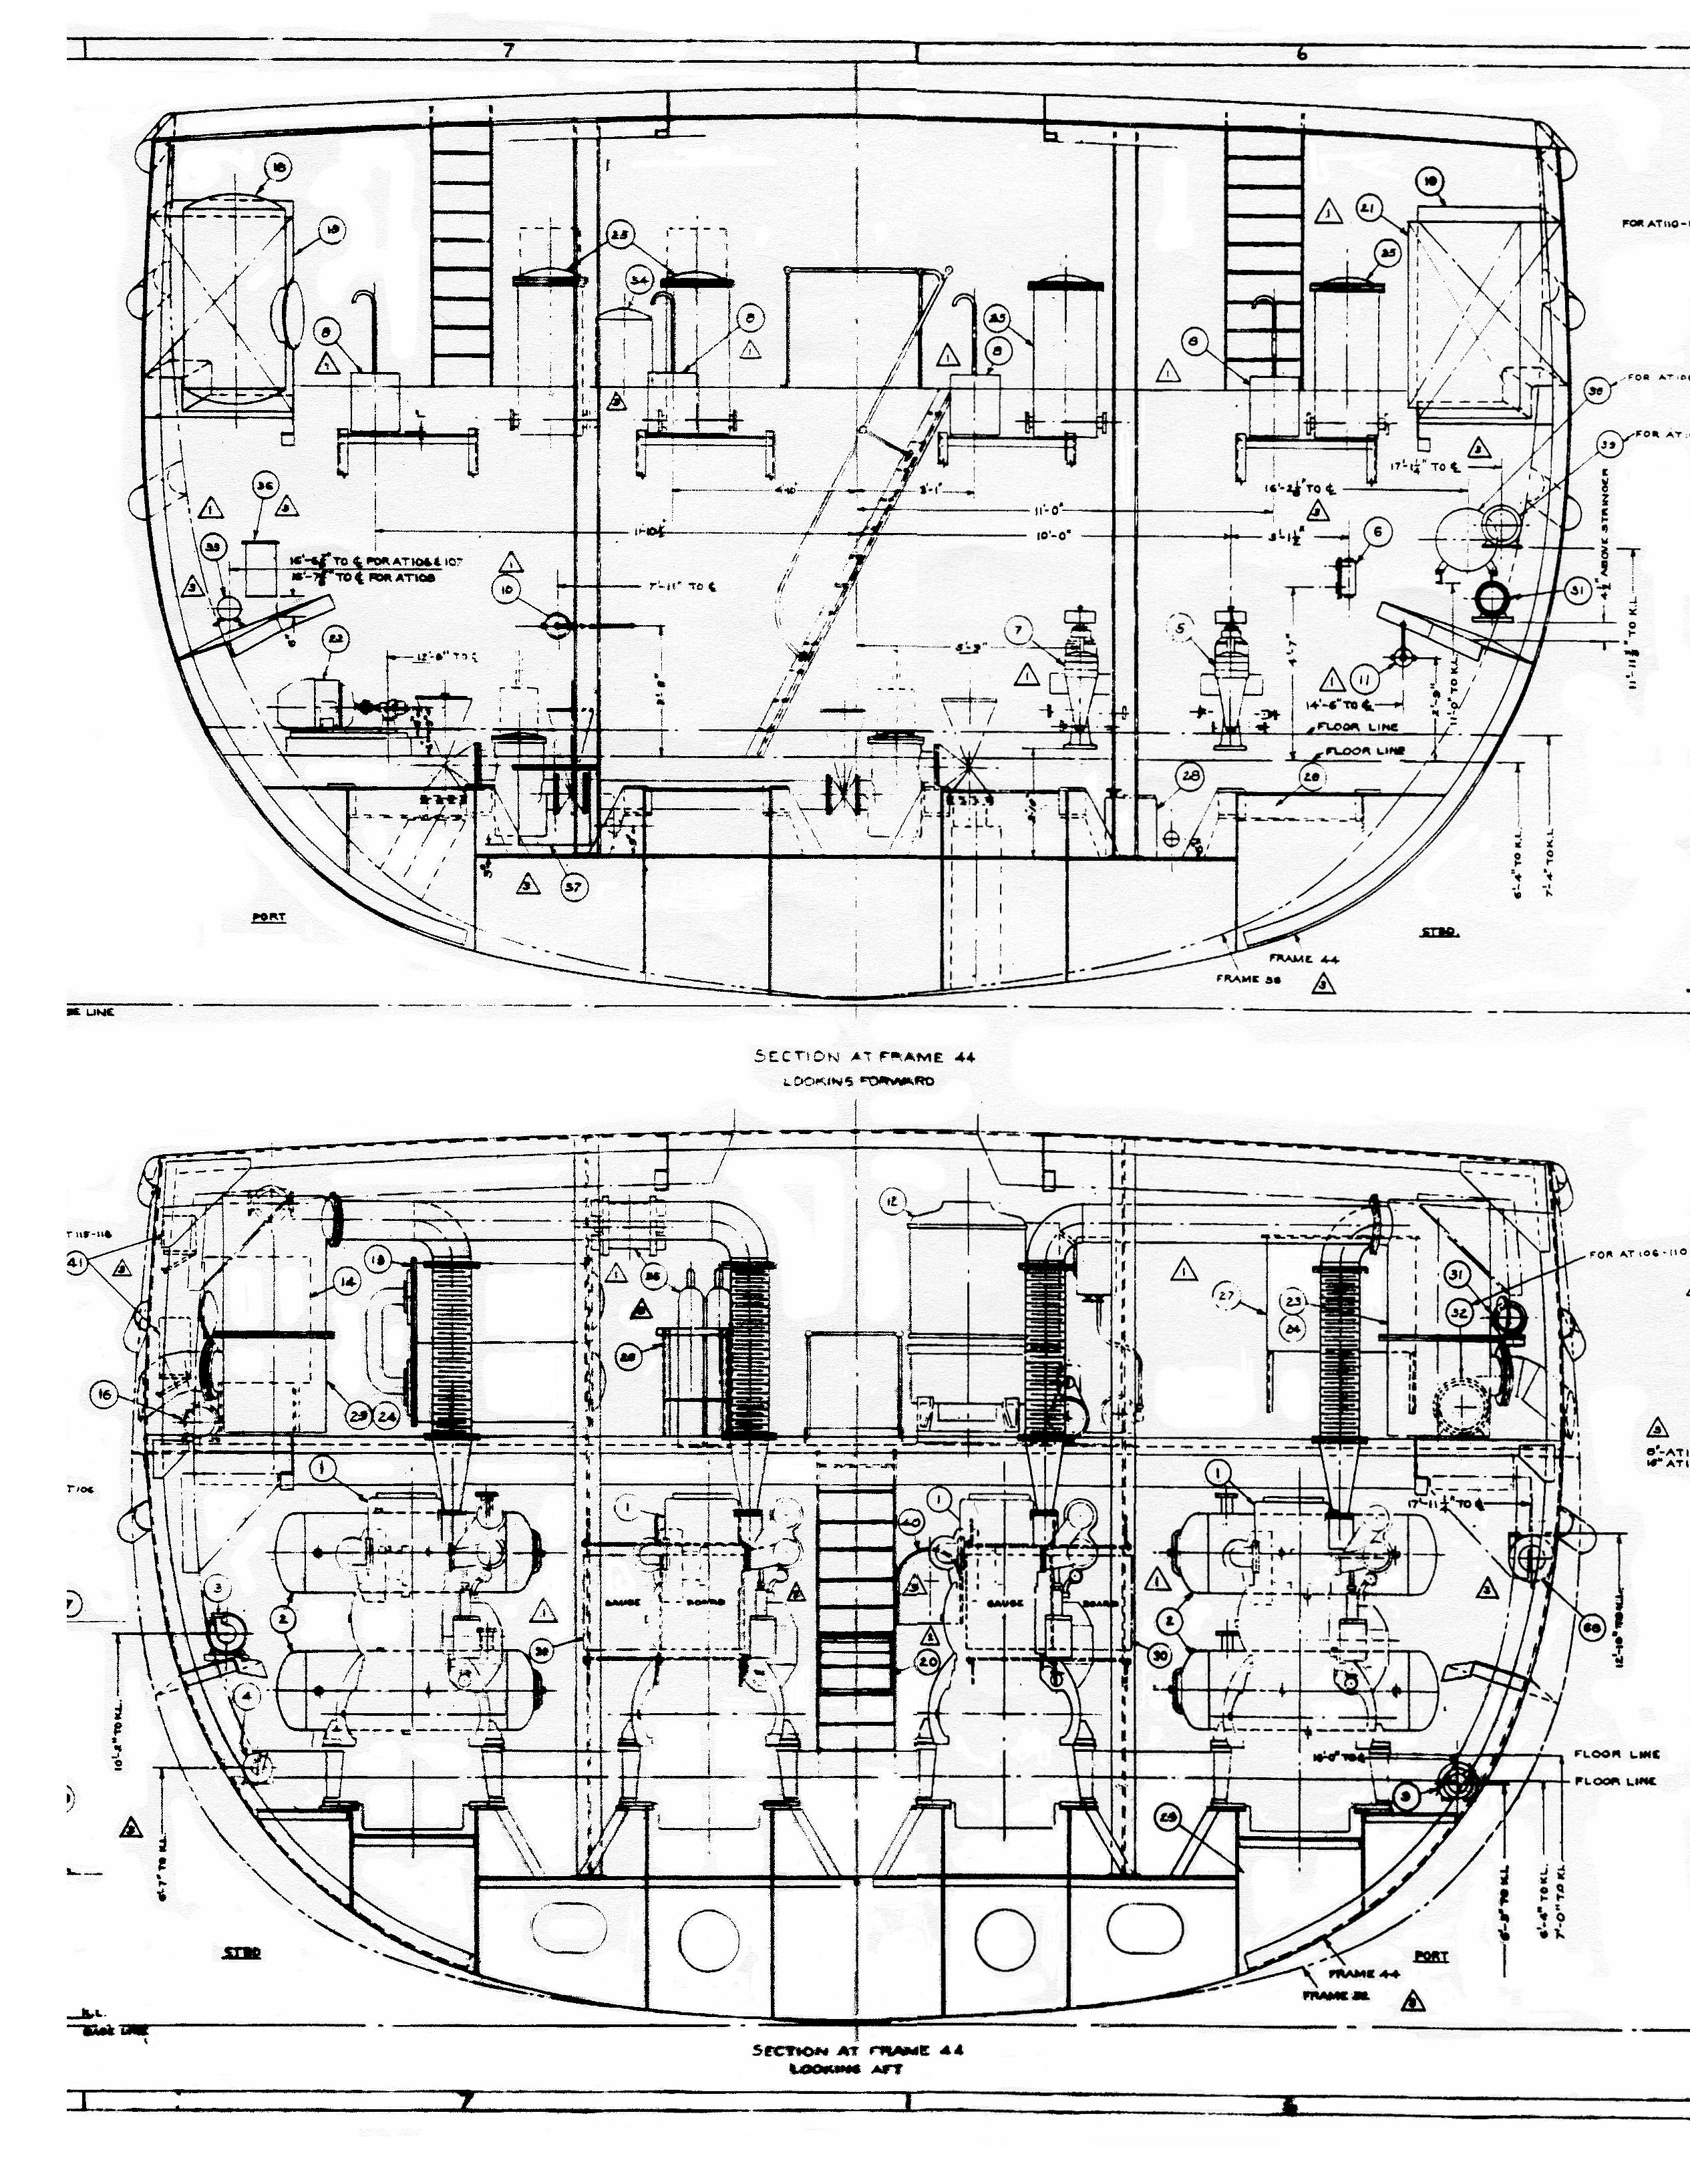 This is a cross-section of the engine room from frame 44, showing the main  engines. Note the exhaust configuration.